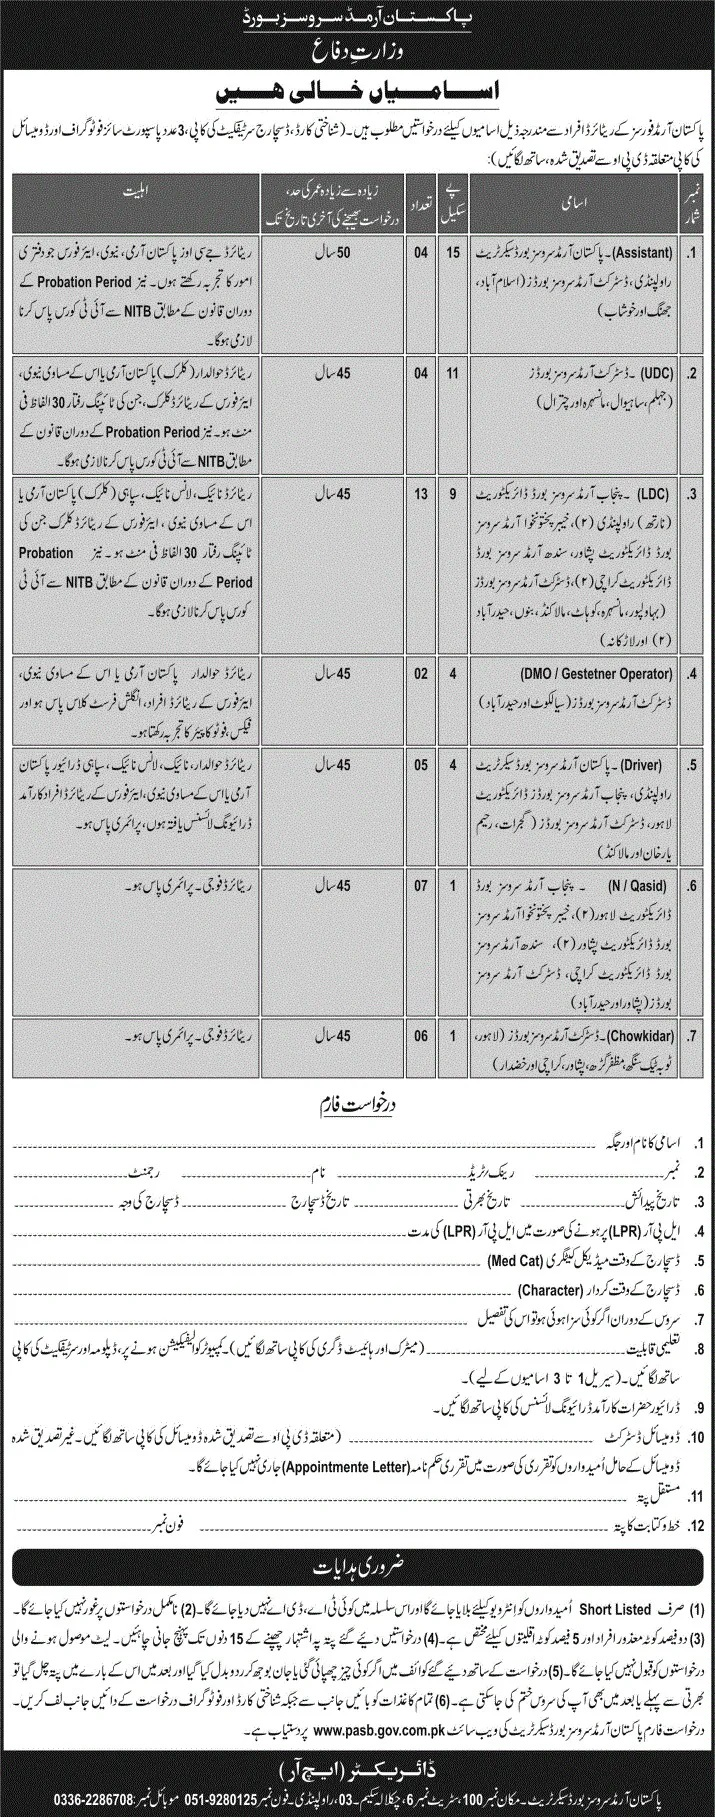 Govt Jobs for Army Retired Persons At Pakistan Armed Services Board